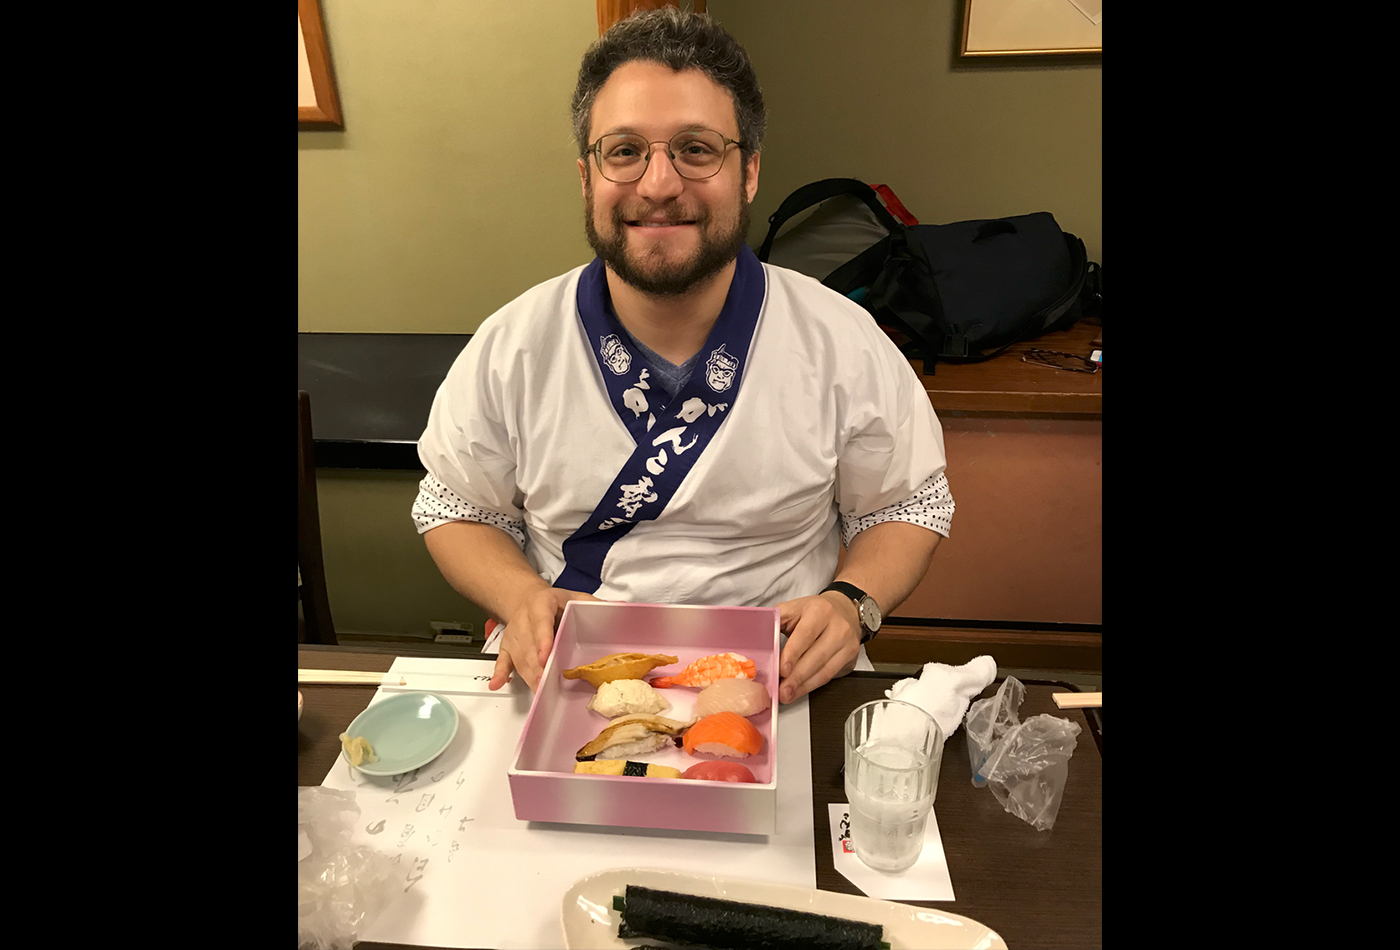 A male graduate student sits at a Japanese restaurant displaying a box of sushi.